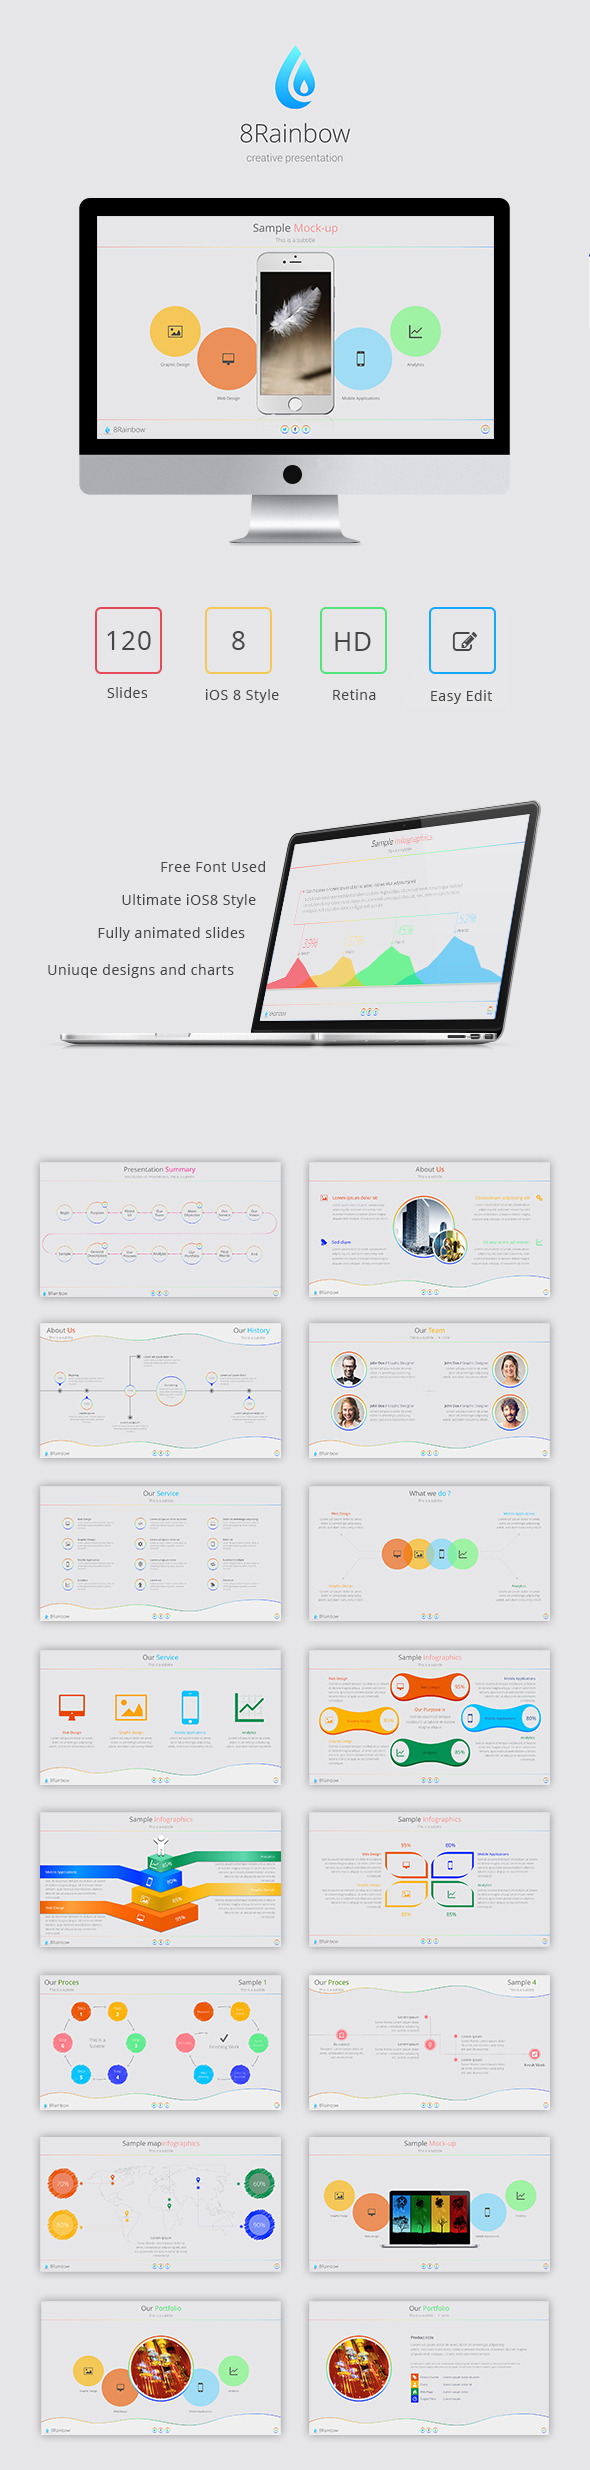 GraphicRiver 8Rainbow Keynote Template 9144160